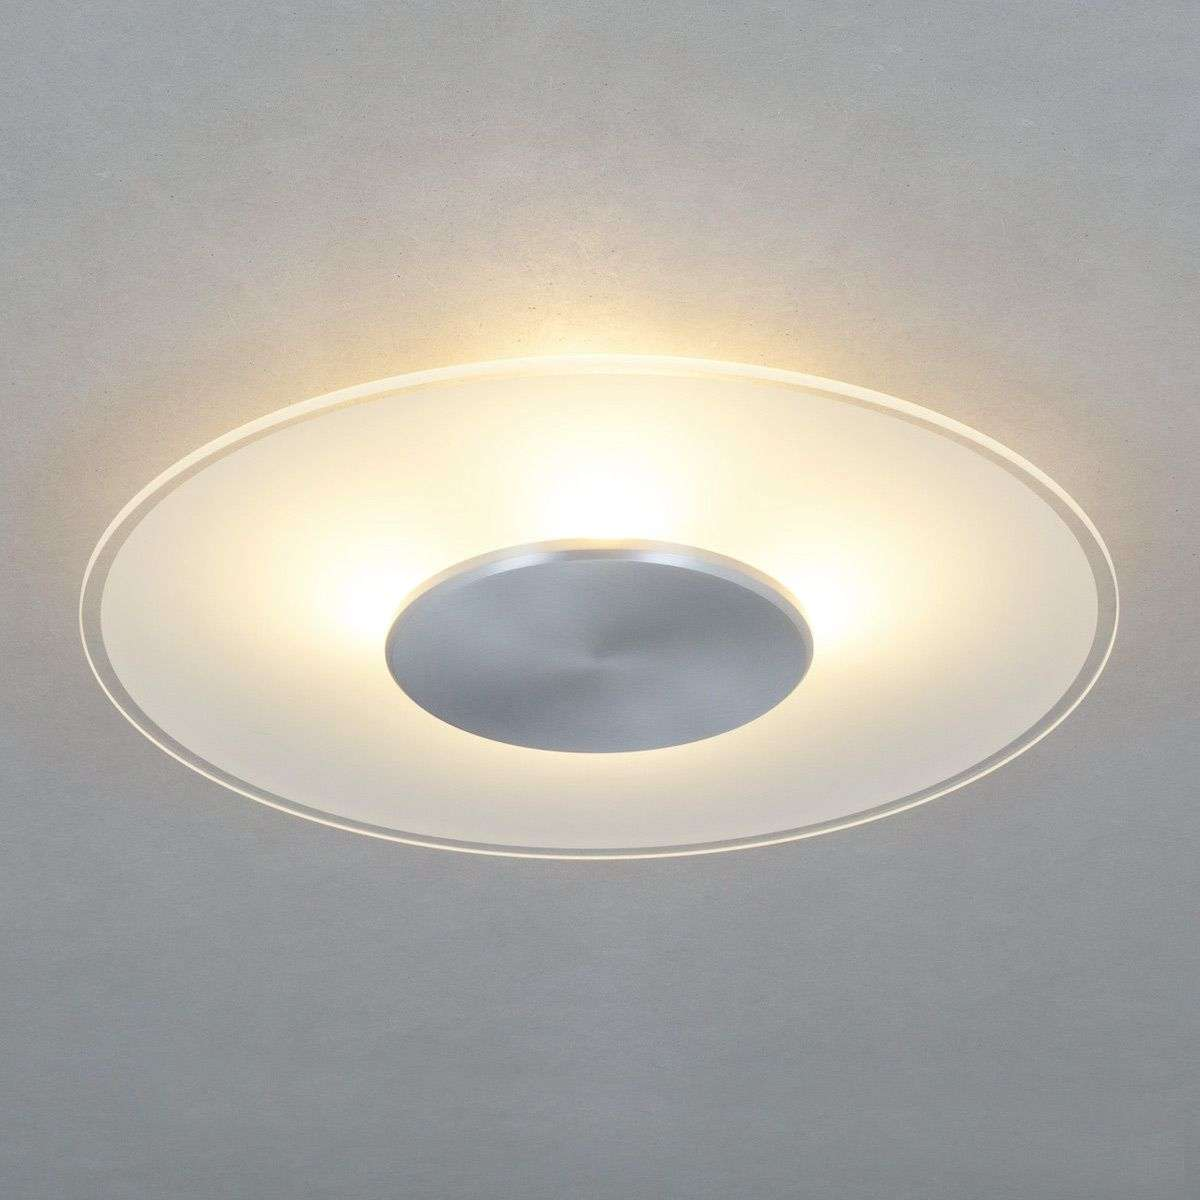 Dora german made led ceiling light lights co uk